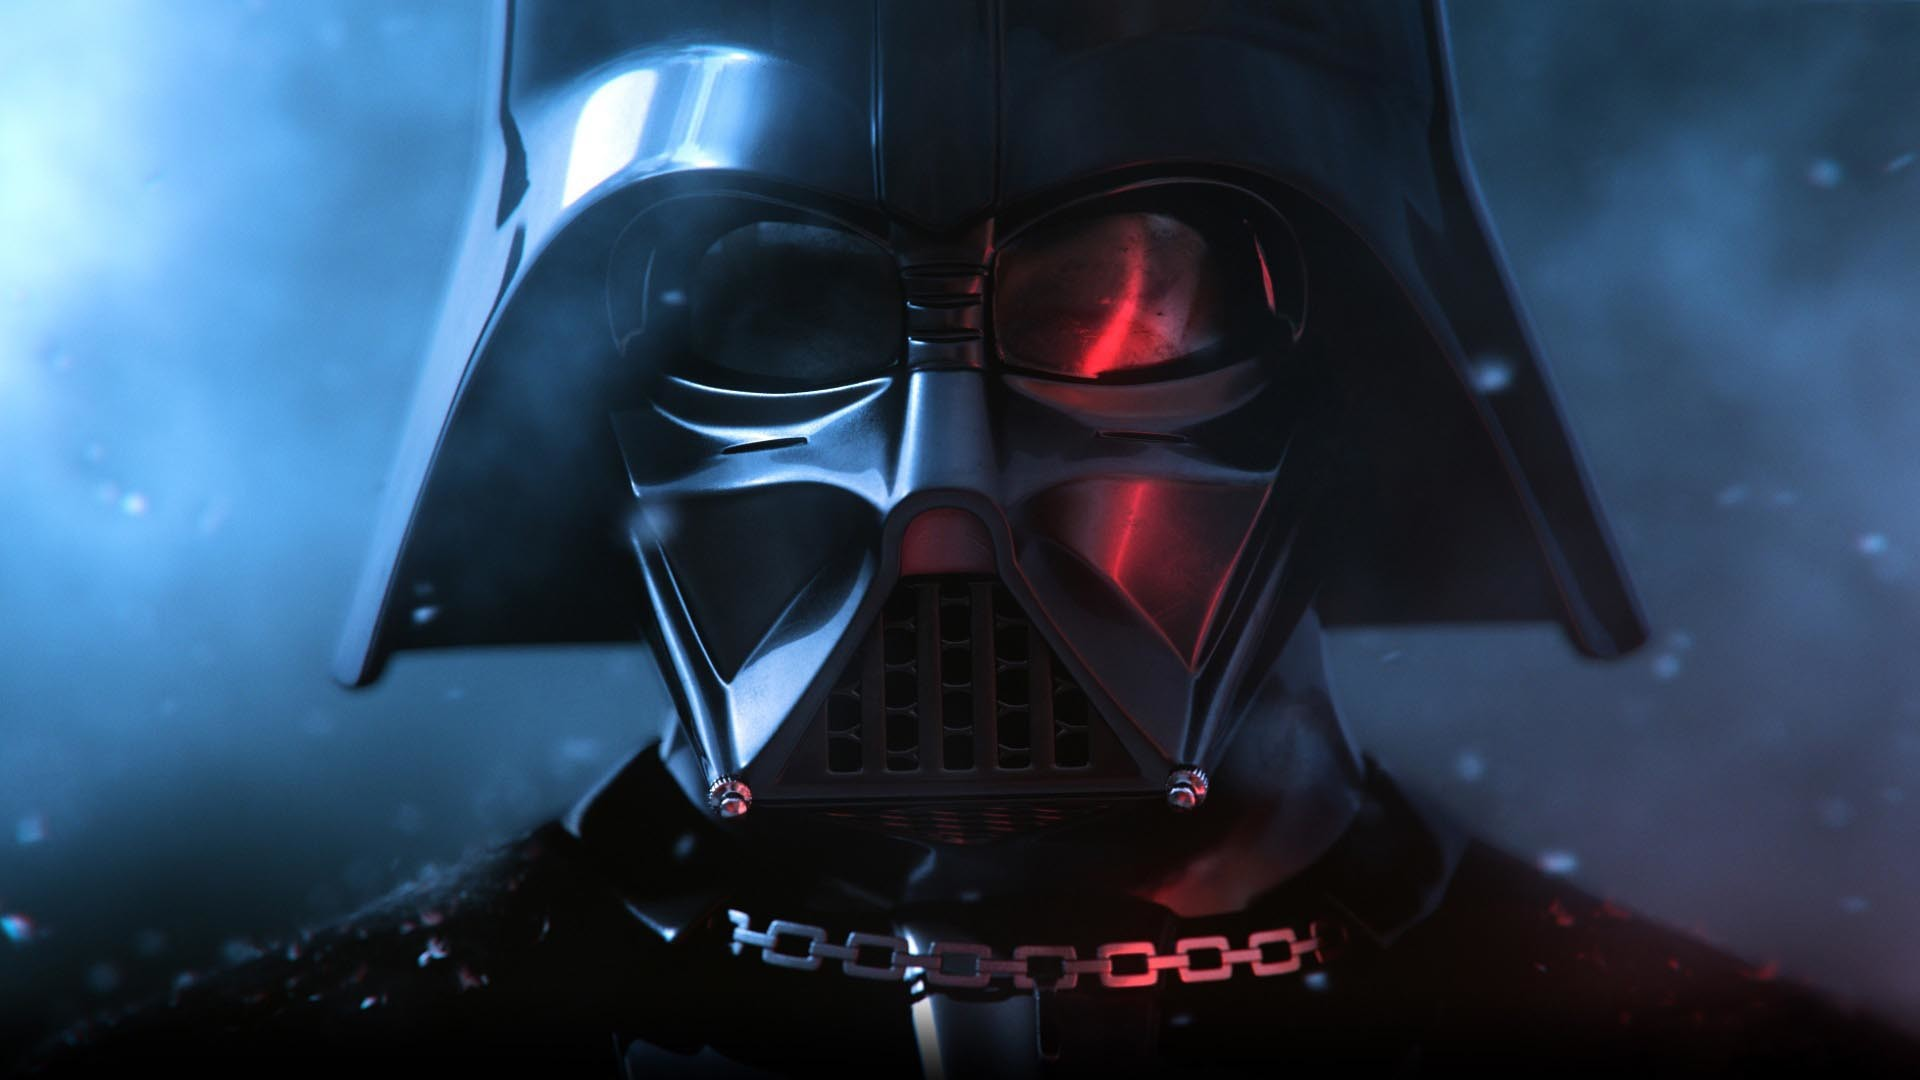 Darth Vader Background 73 pictures 1920x1080